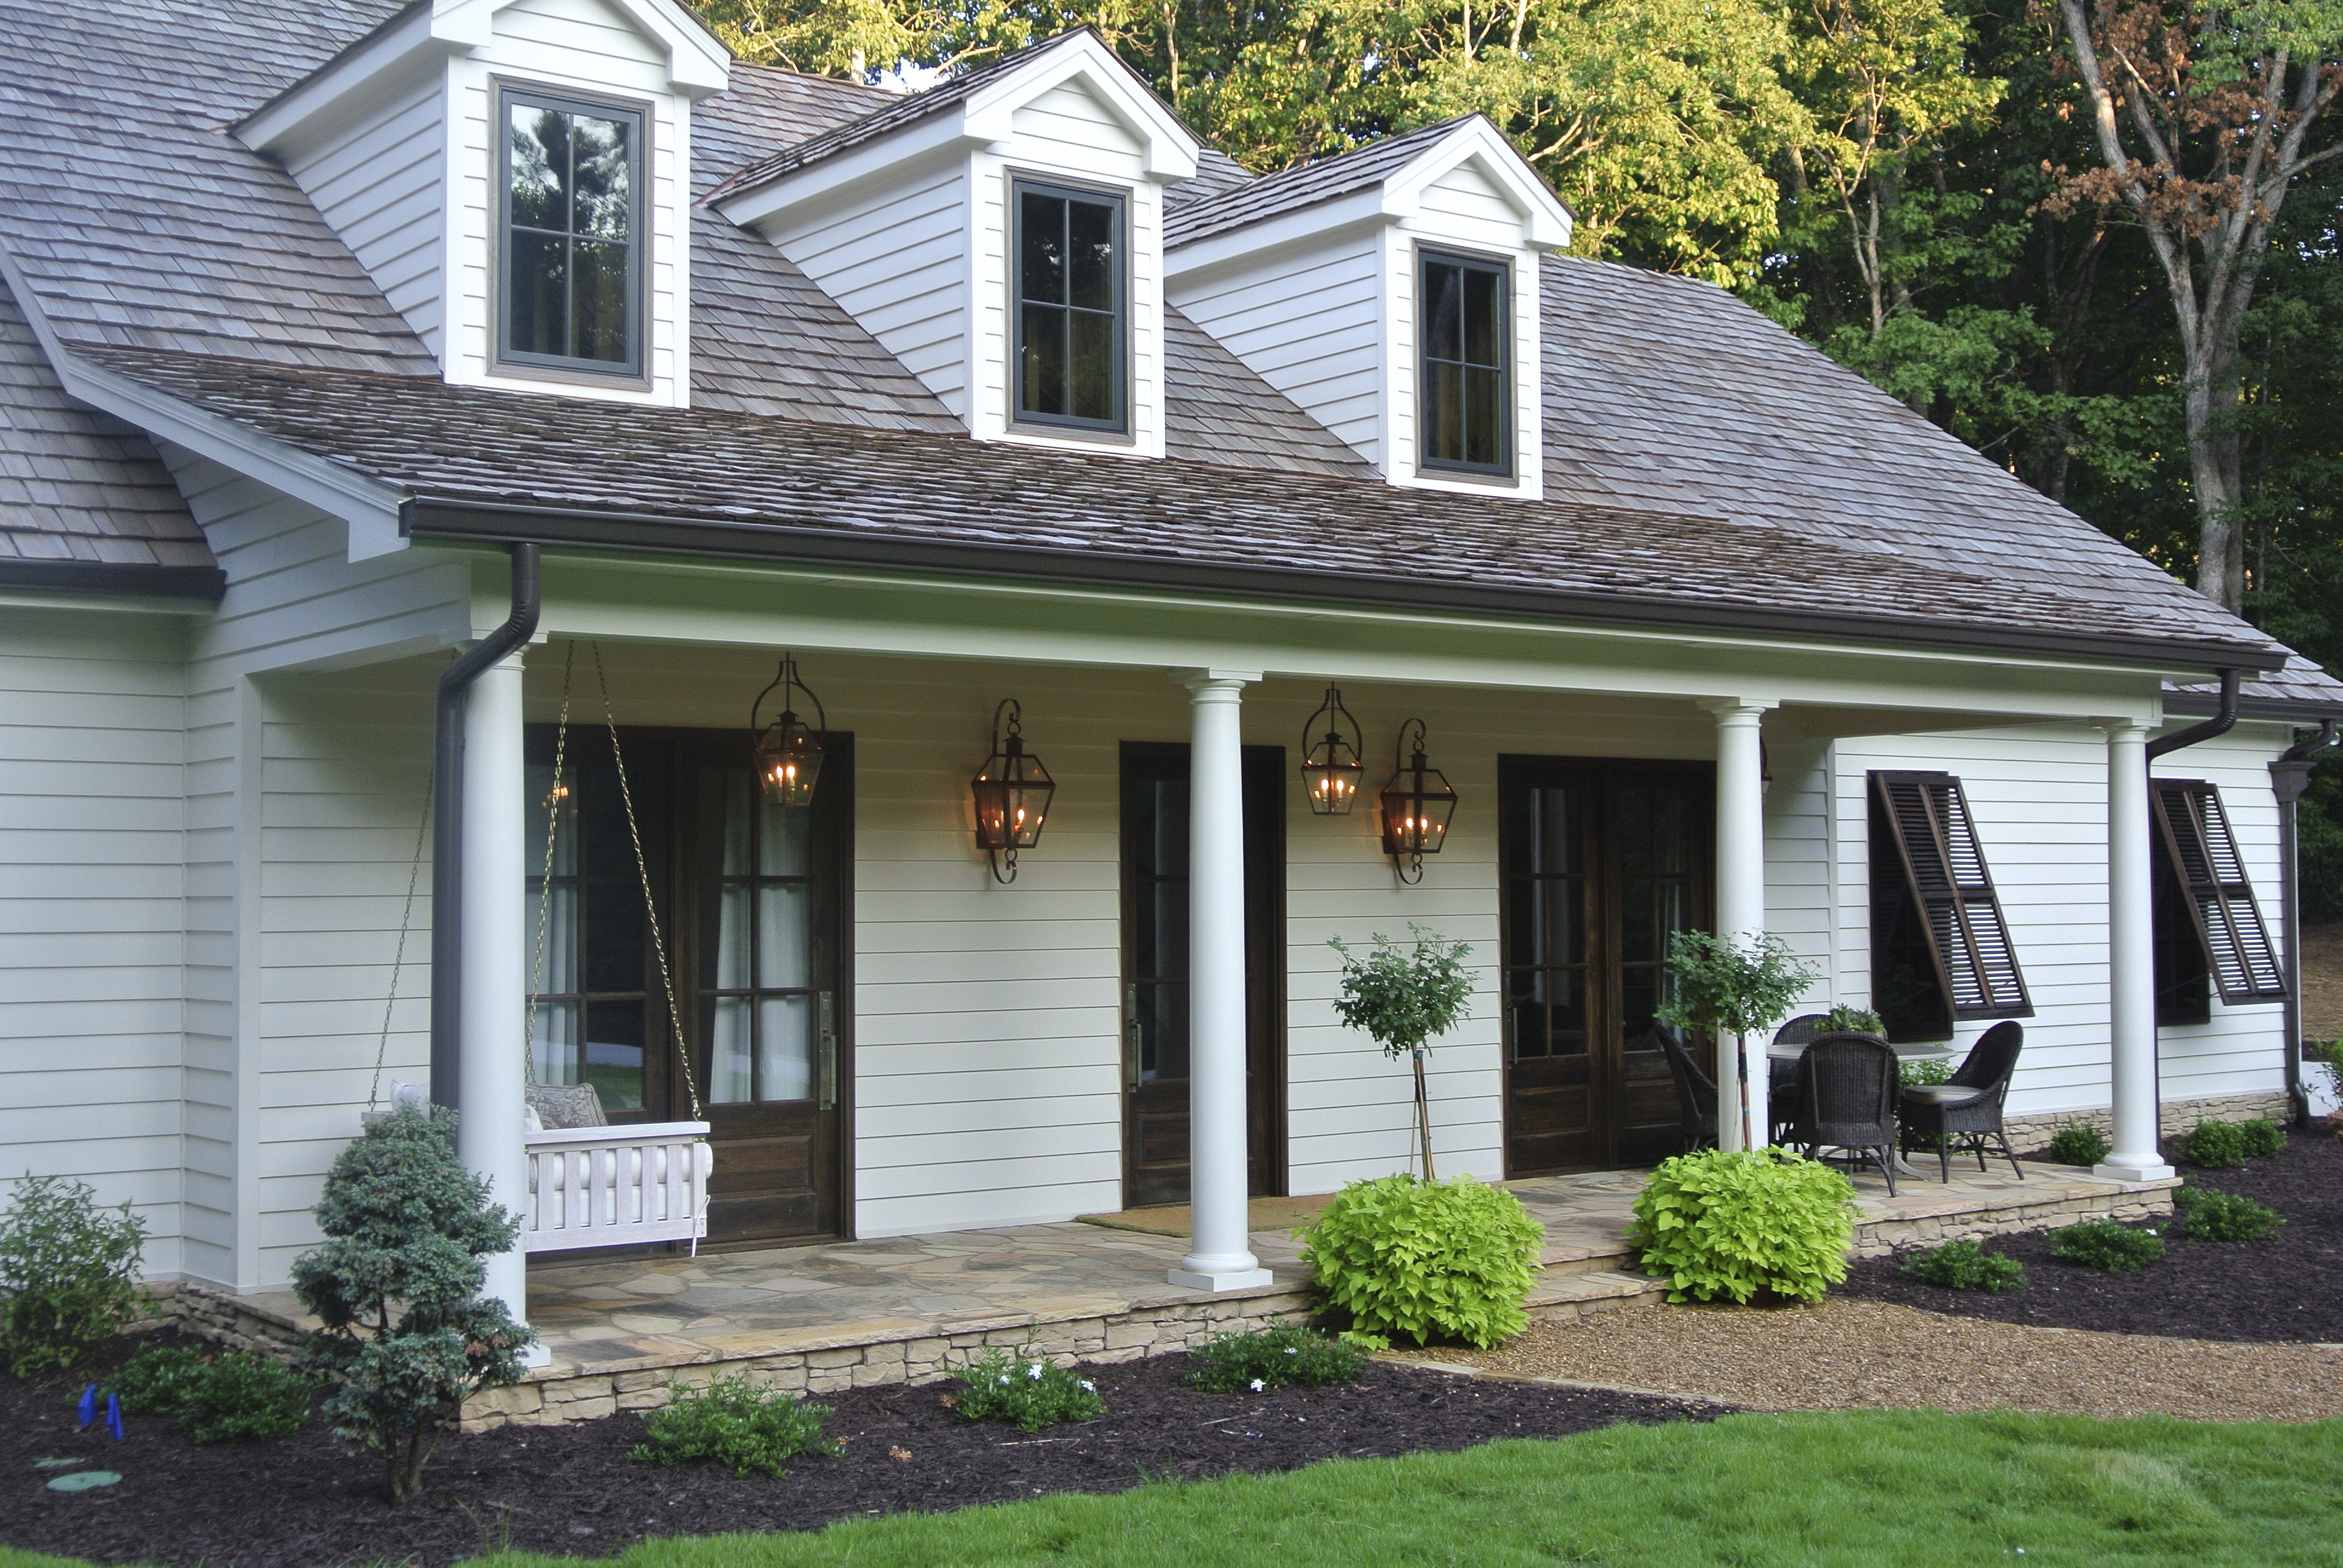 Cypress The Natural Choice For Siding